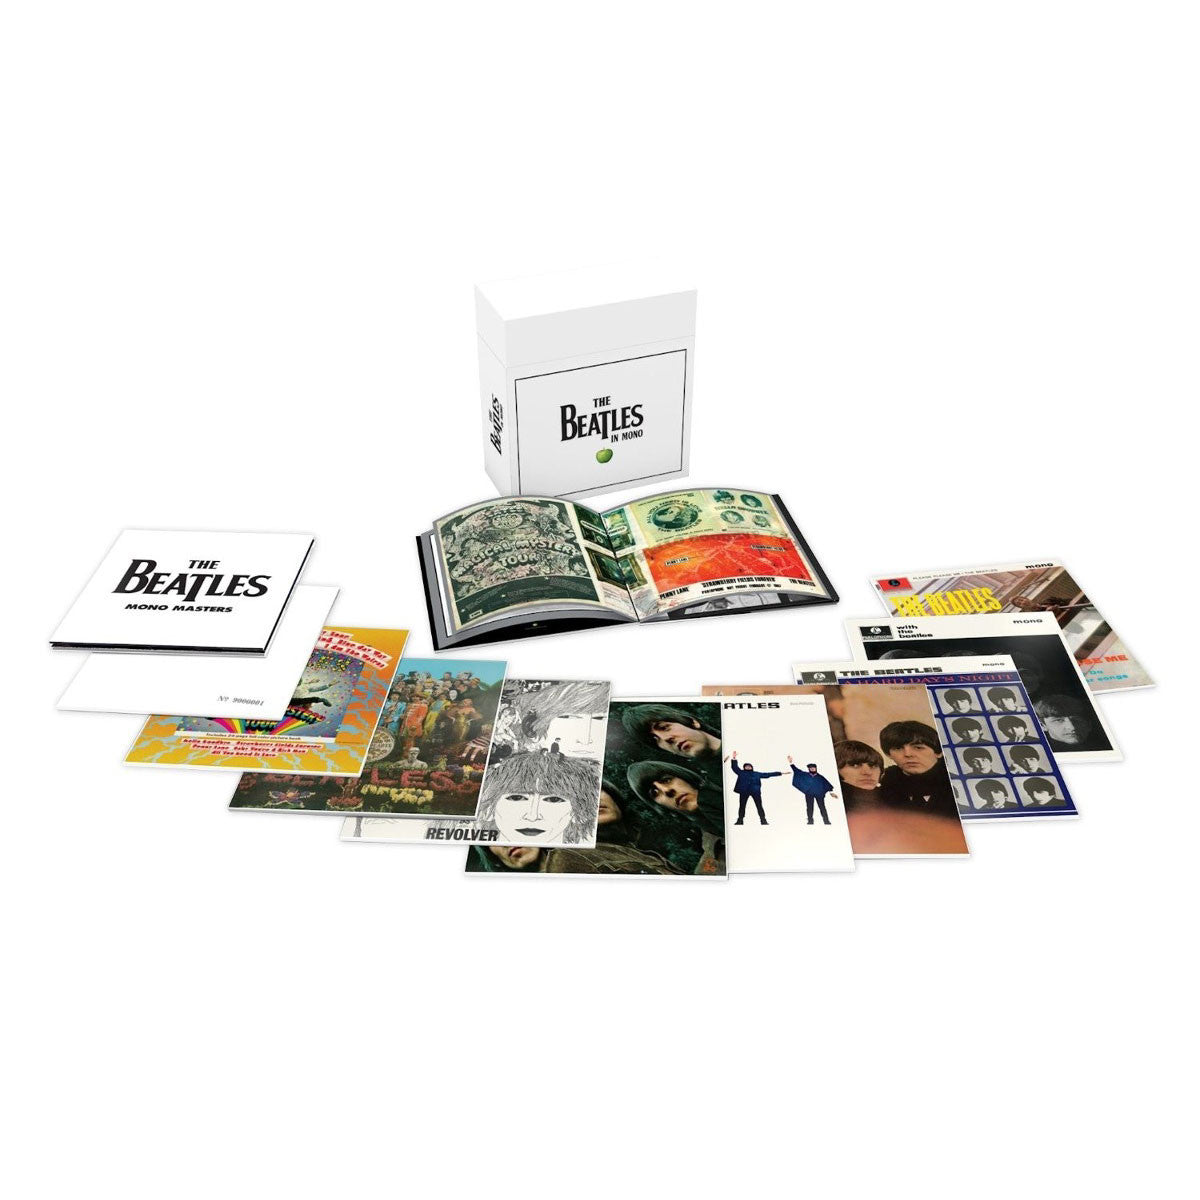 The Beatles: The Beatles In Mono Vinyl 14LP Box Set